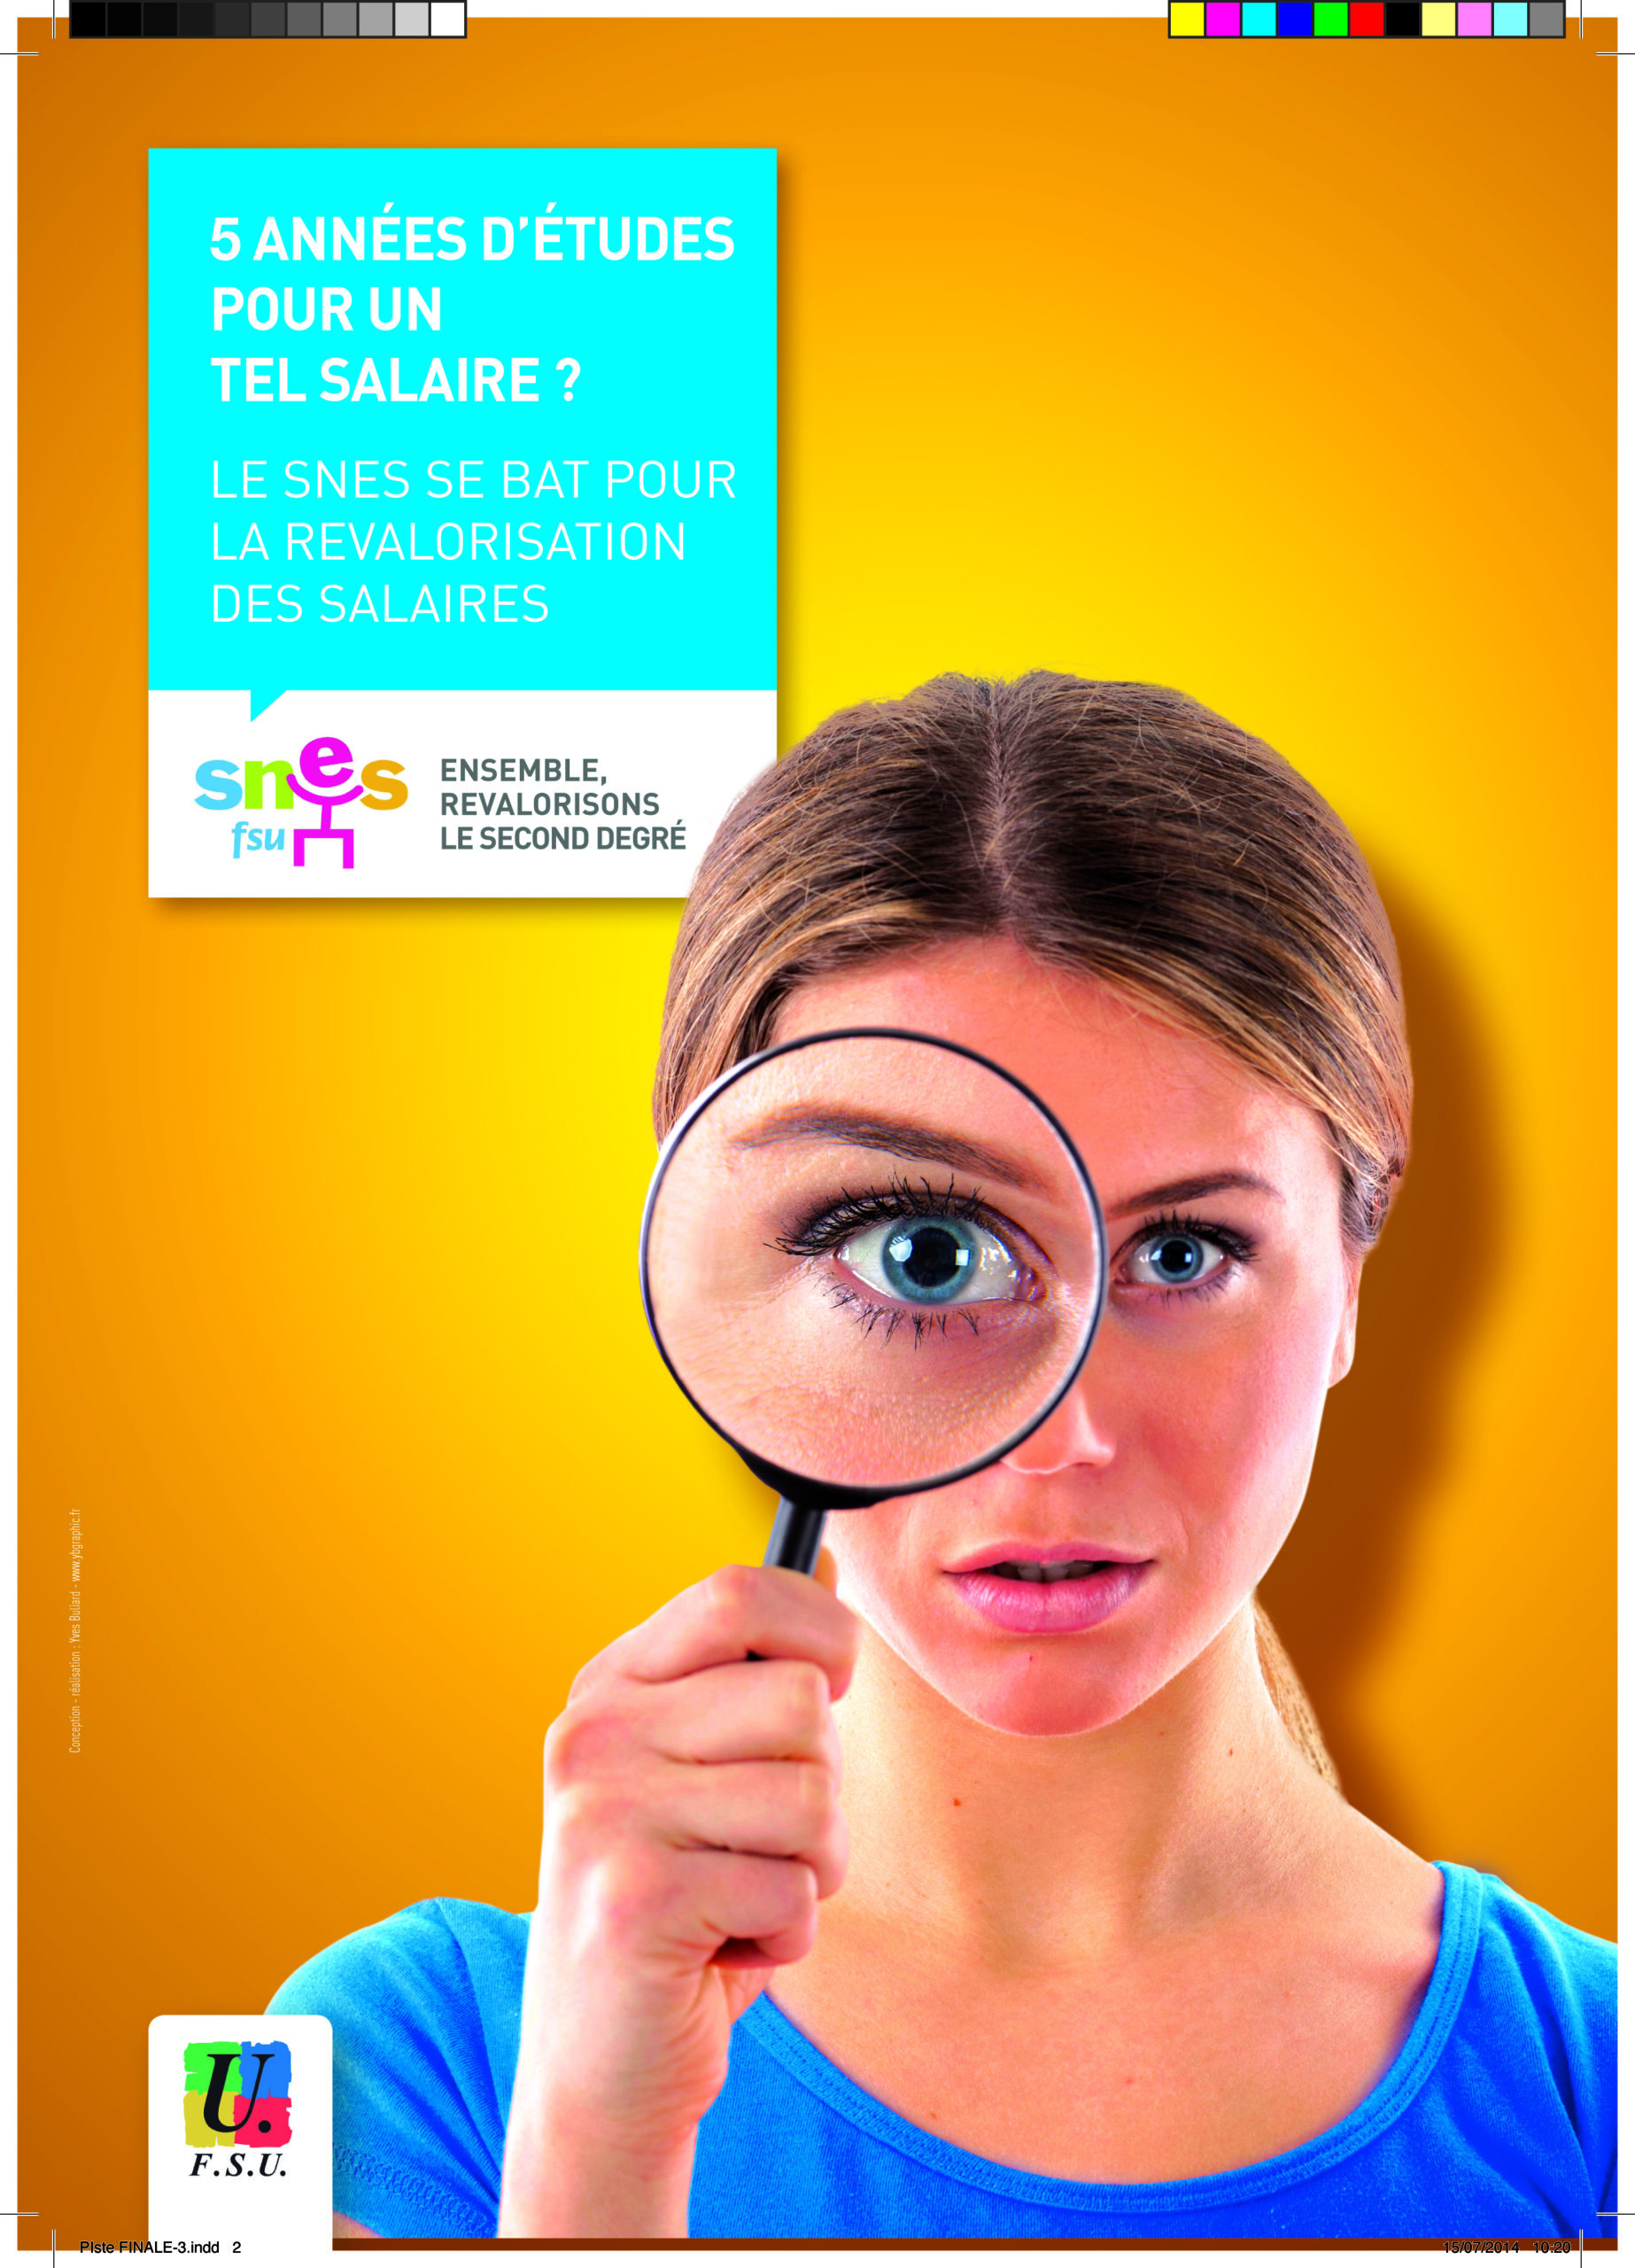 Salaires 2 - Cadre + Image - Format JPG - 5,1 Mo